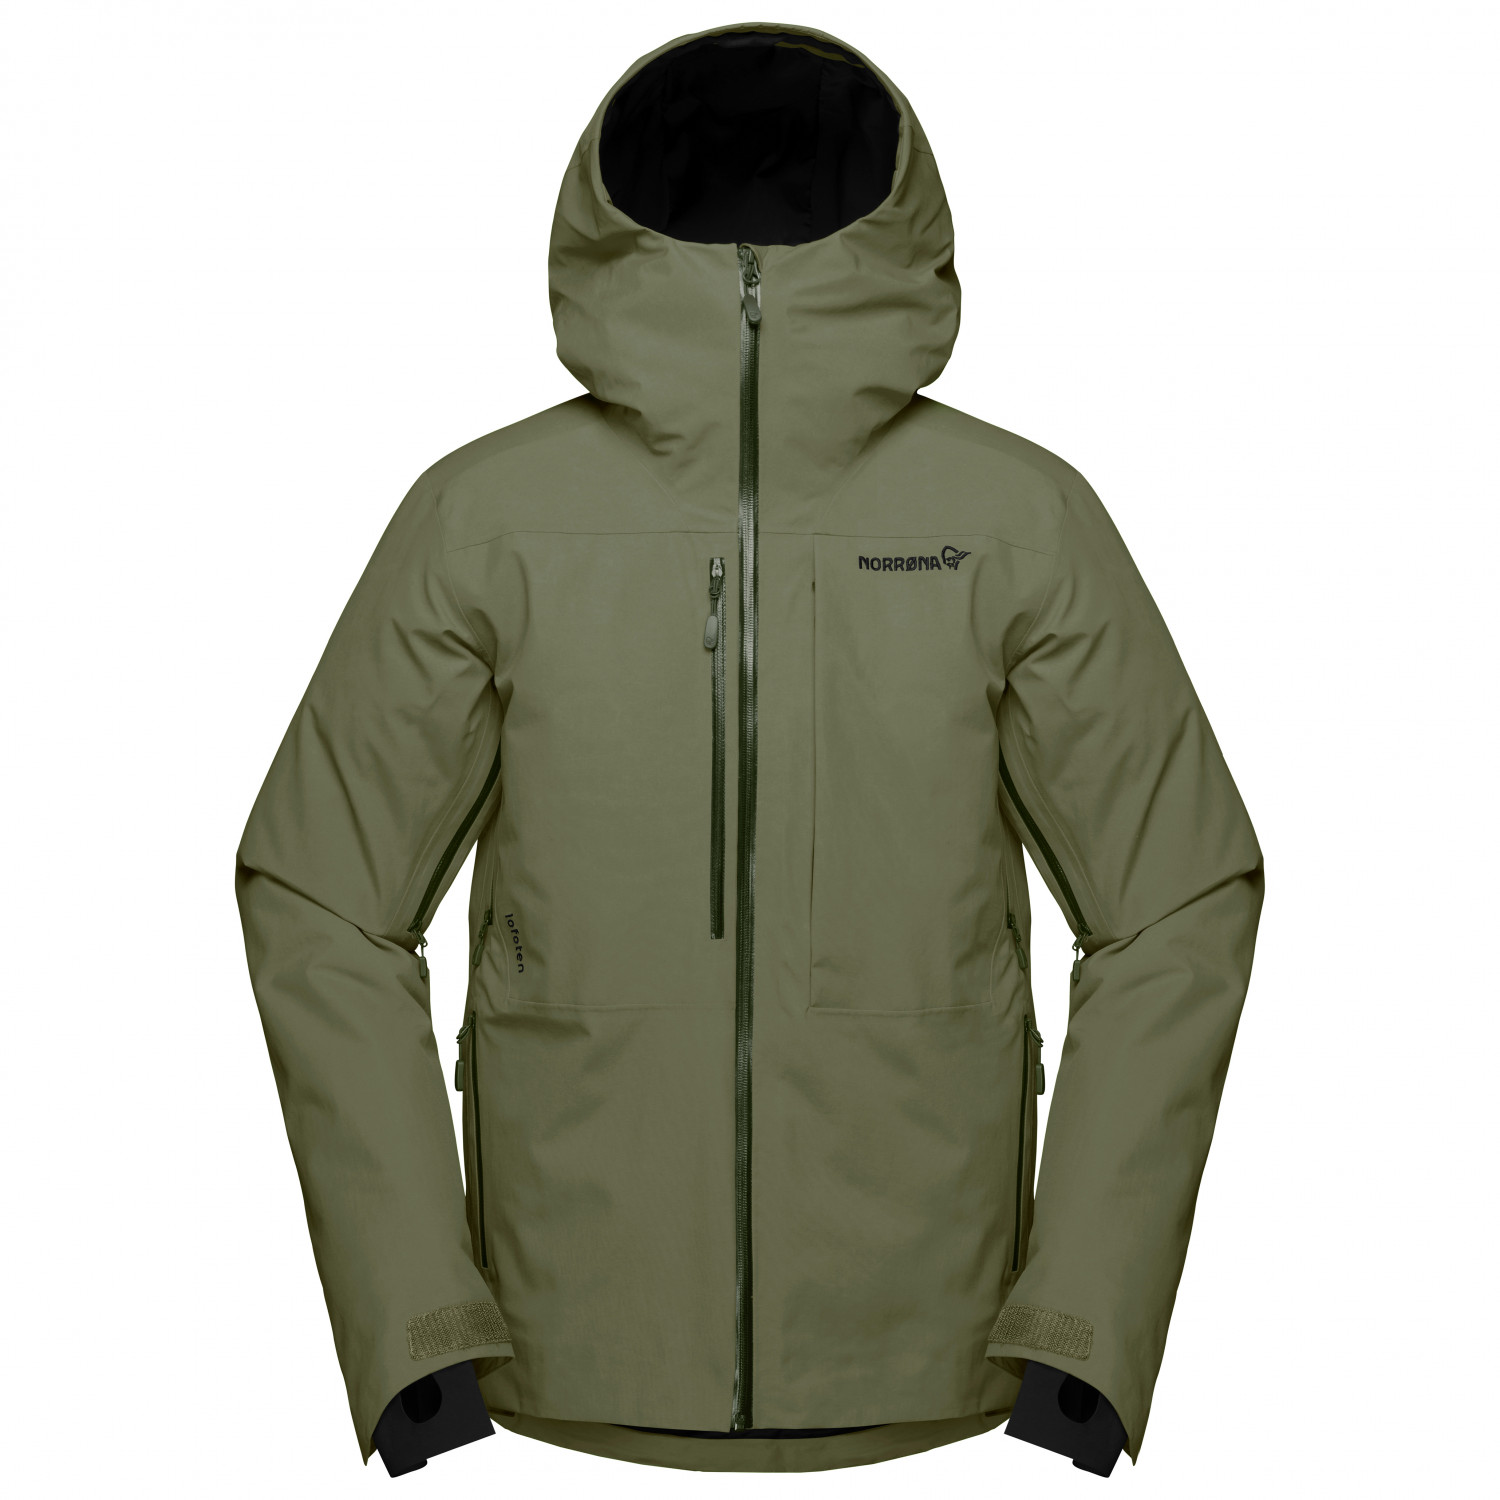 Norrøna Lofoten Gore Tex Insulated Jacket Skijacke Olive Night | S